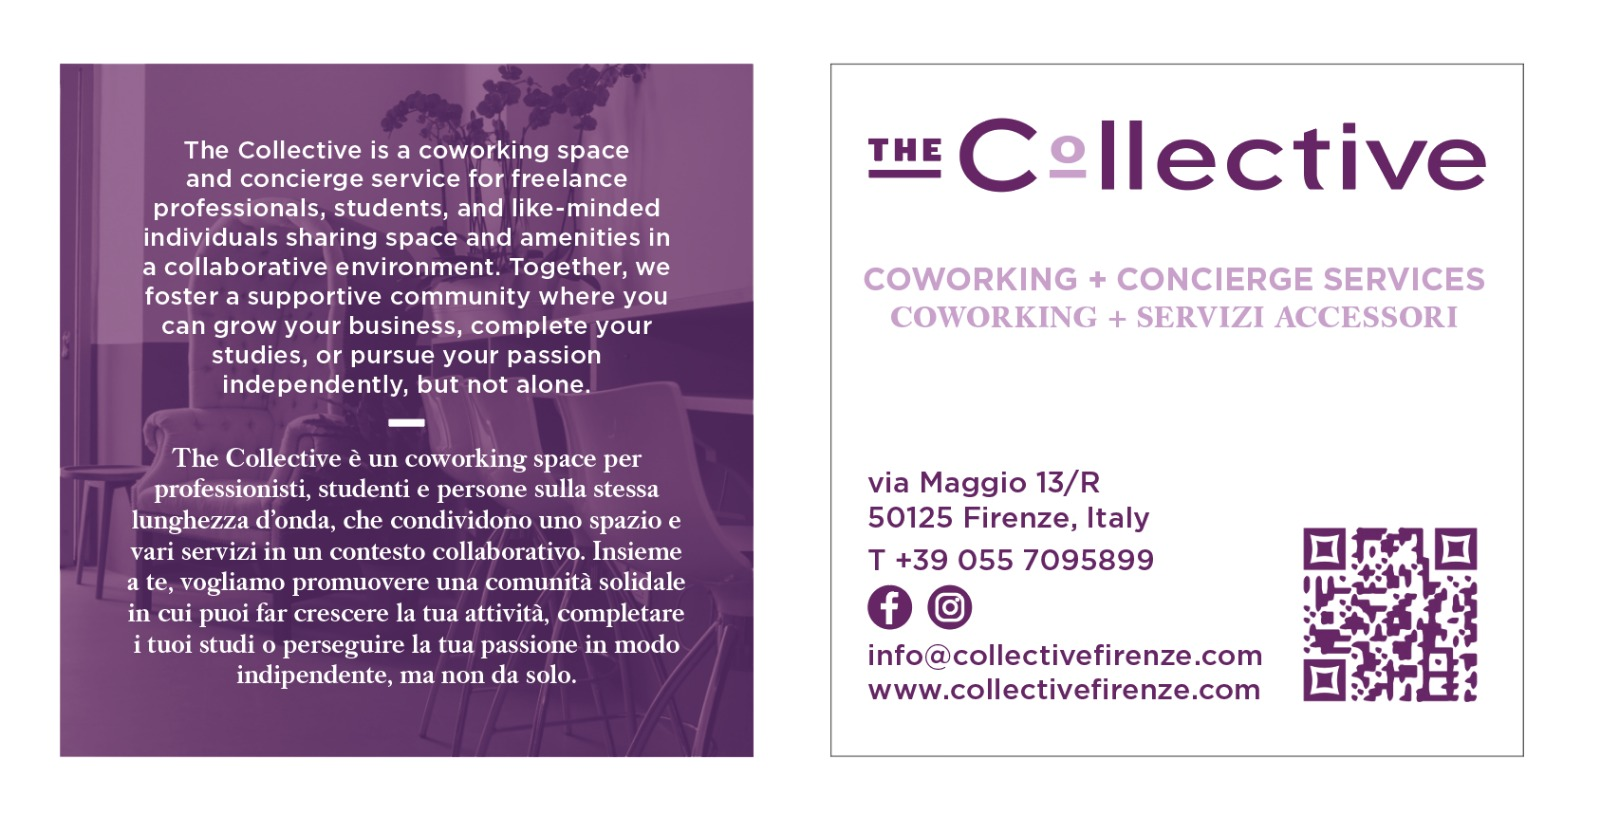 The Collective - Firenze, Florence